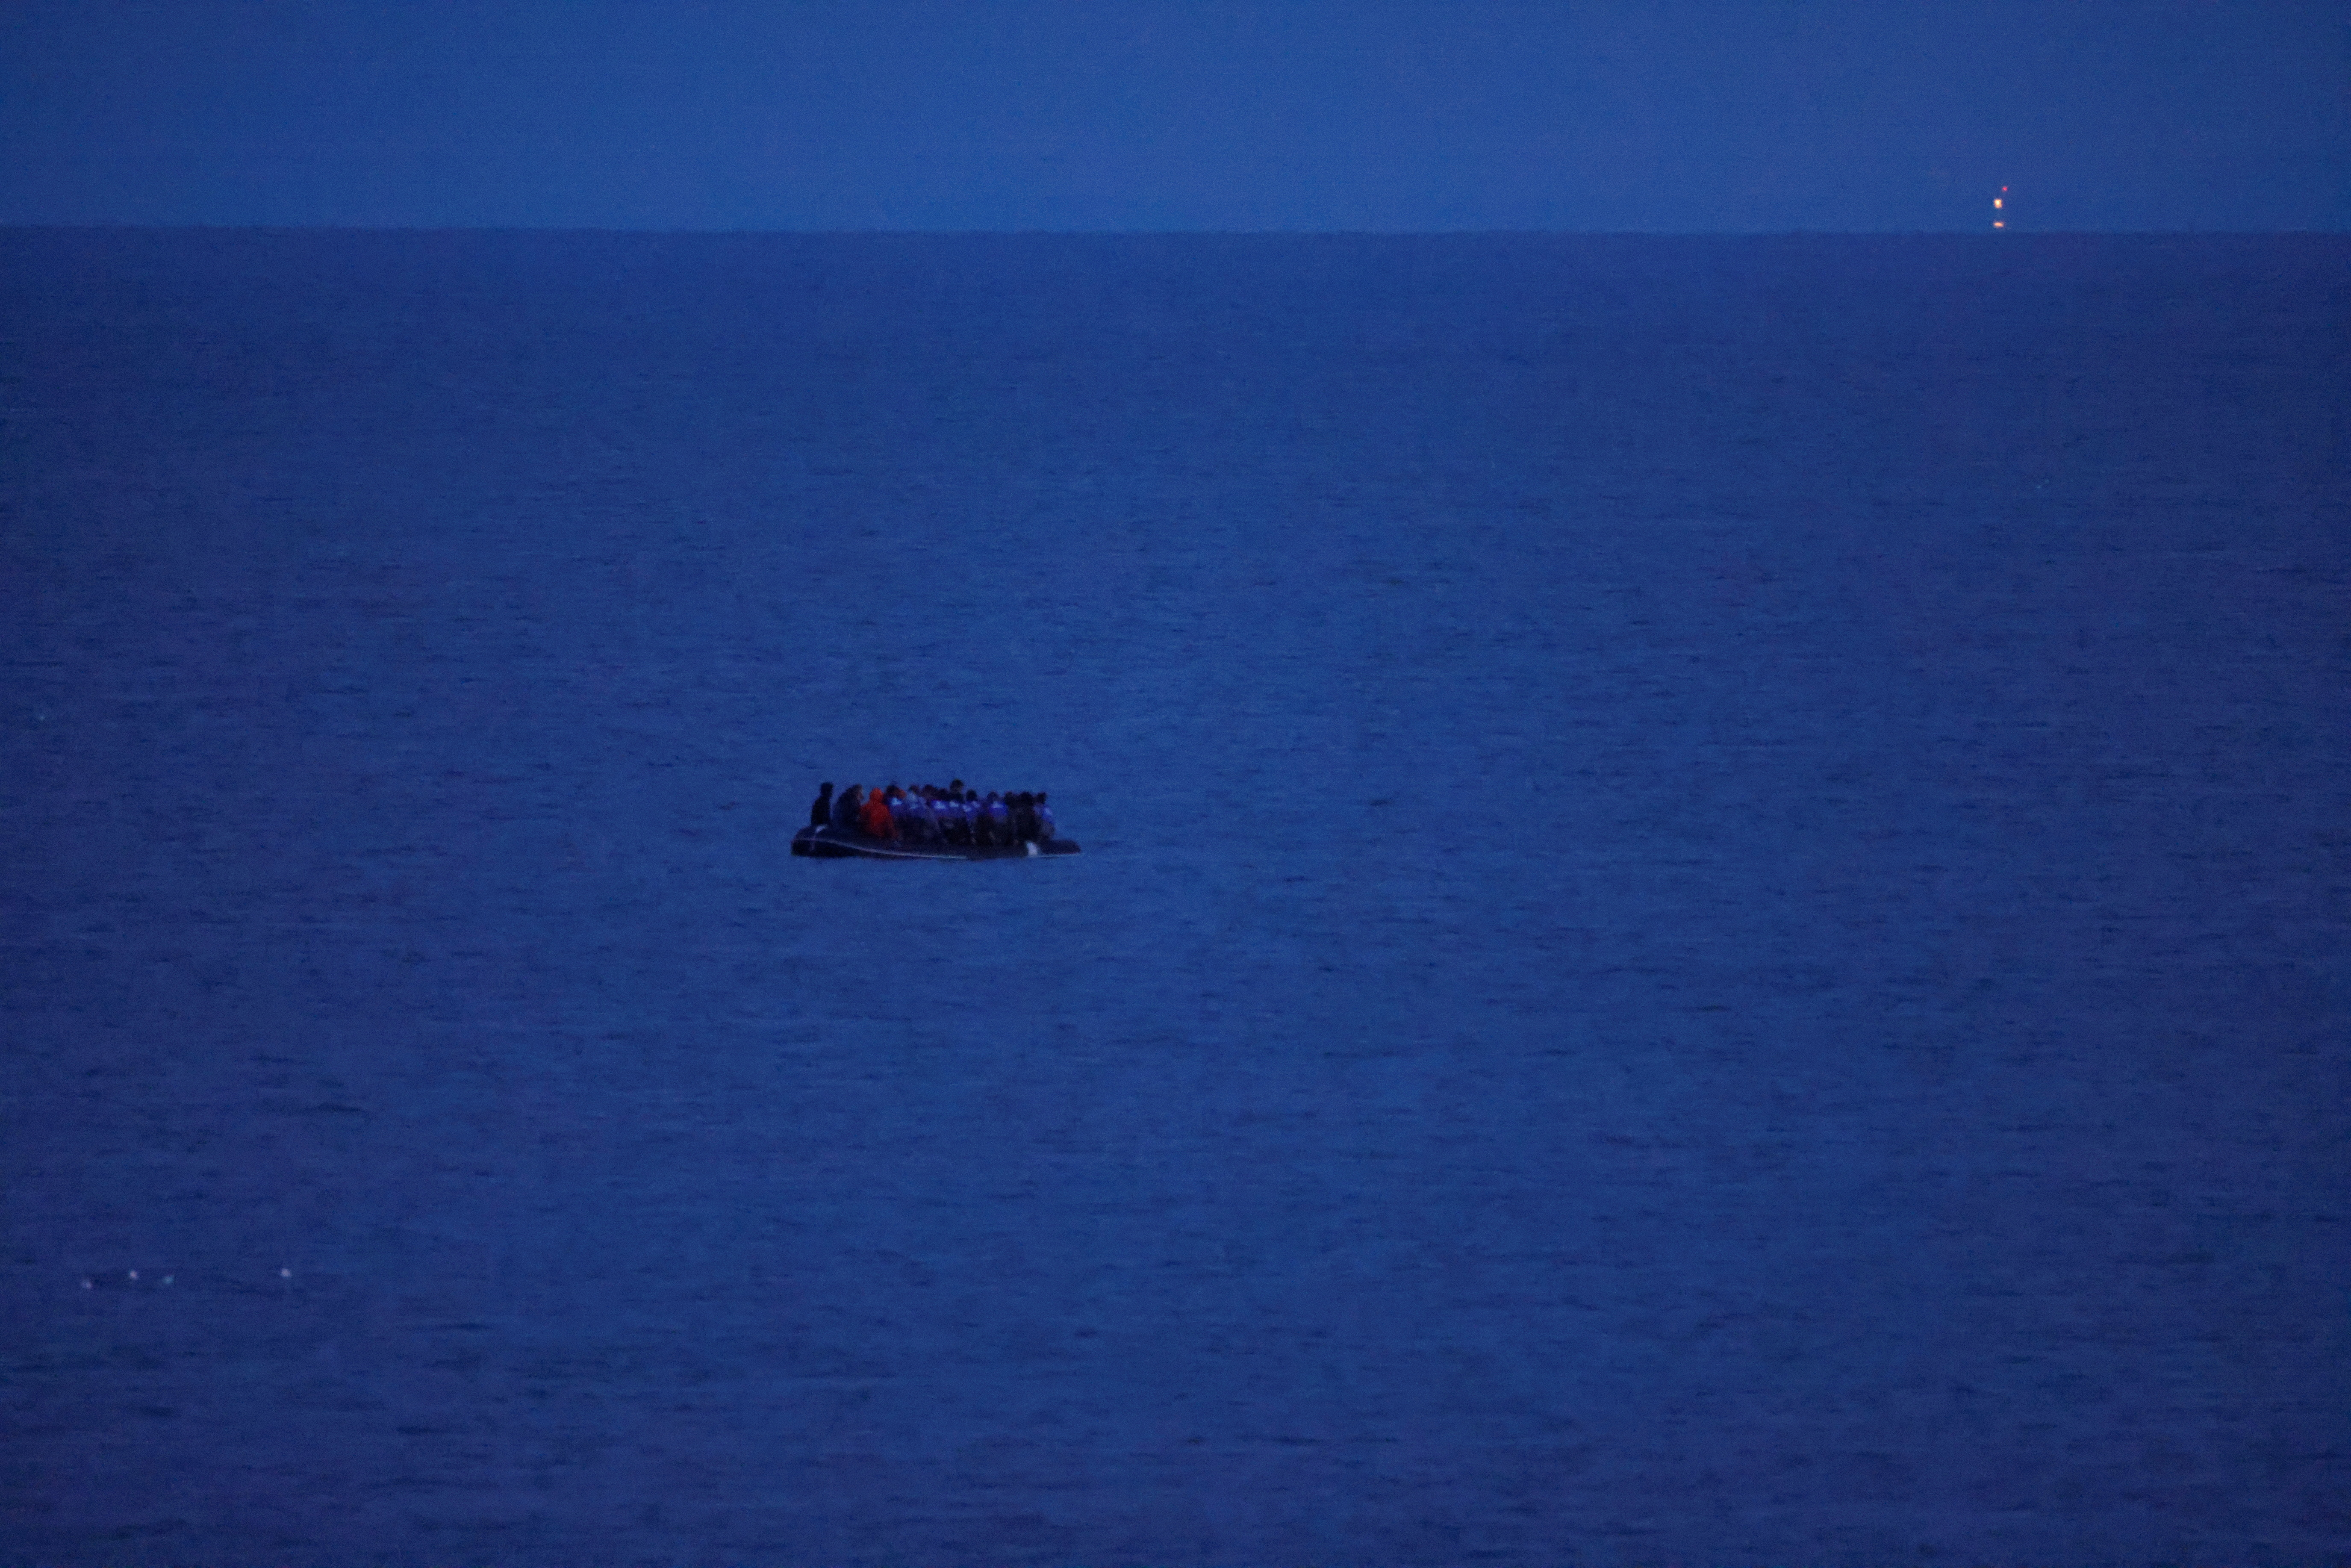 A dinghy with a group of migrants on board leaves the coast of northern France near Wimereux to reach Britain, September 13, 2021. REUTERS/Pascal Rossignol